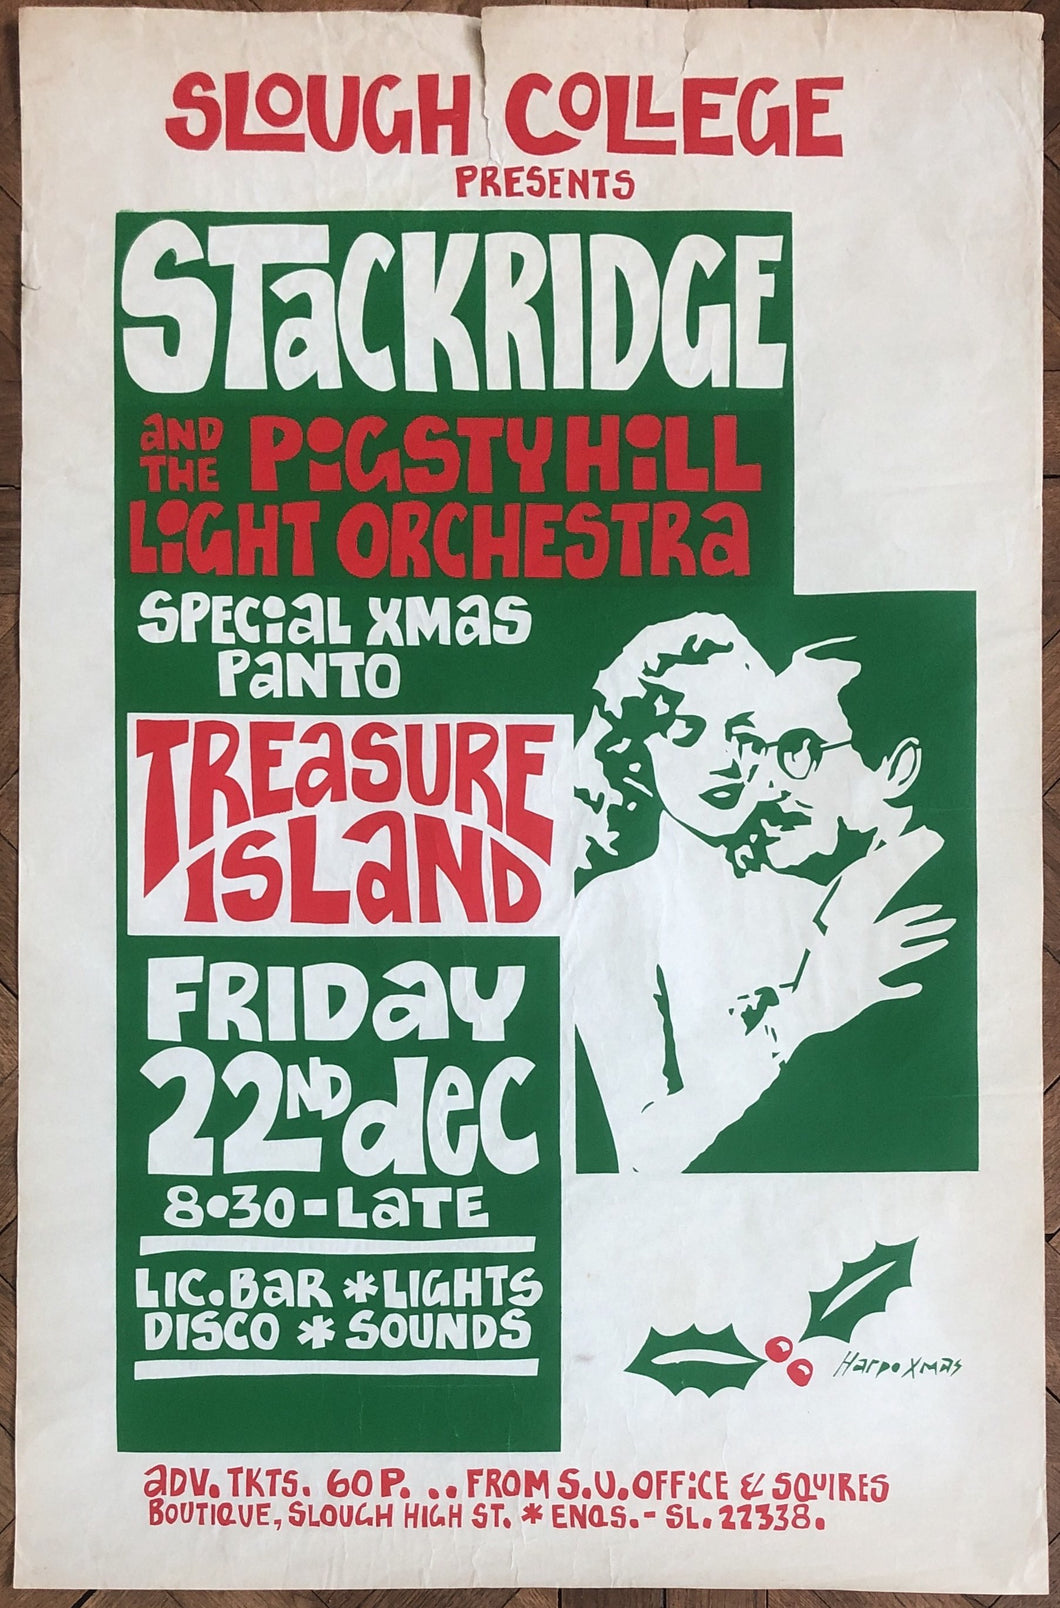 Stackridge Original Concert Tour Gig Poster Slough College 22nd Dec 1972